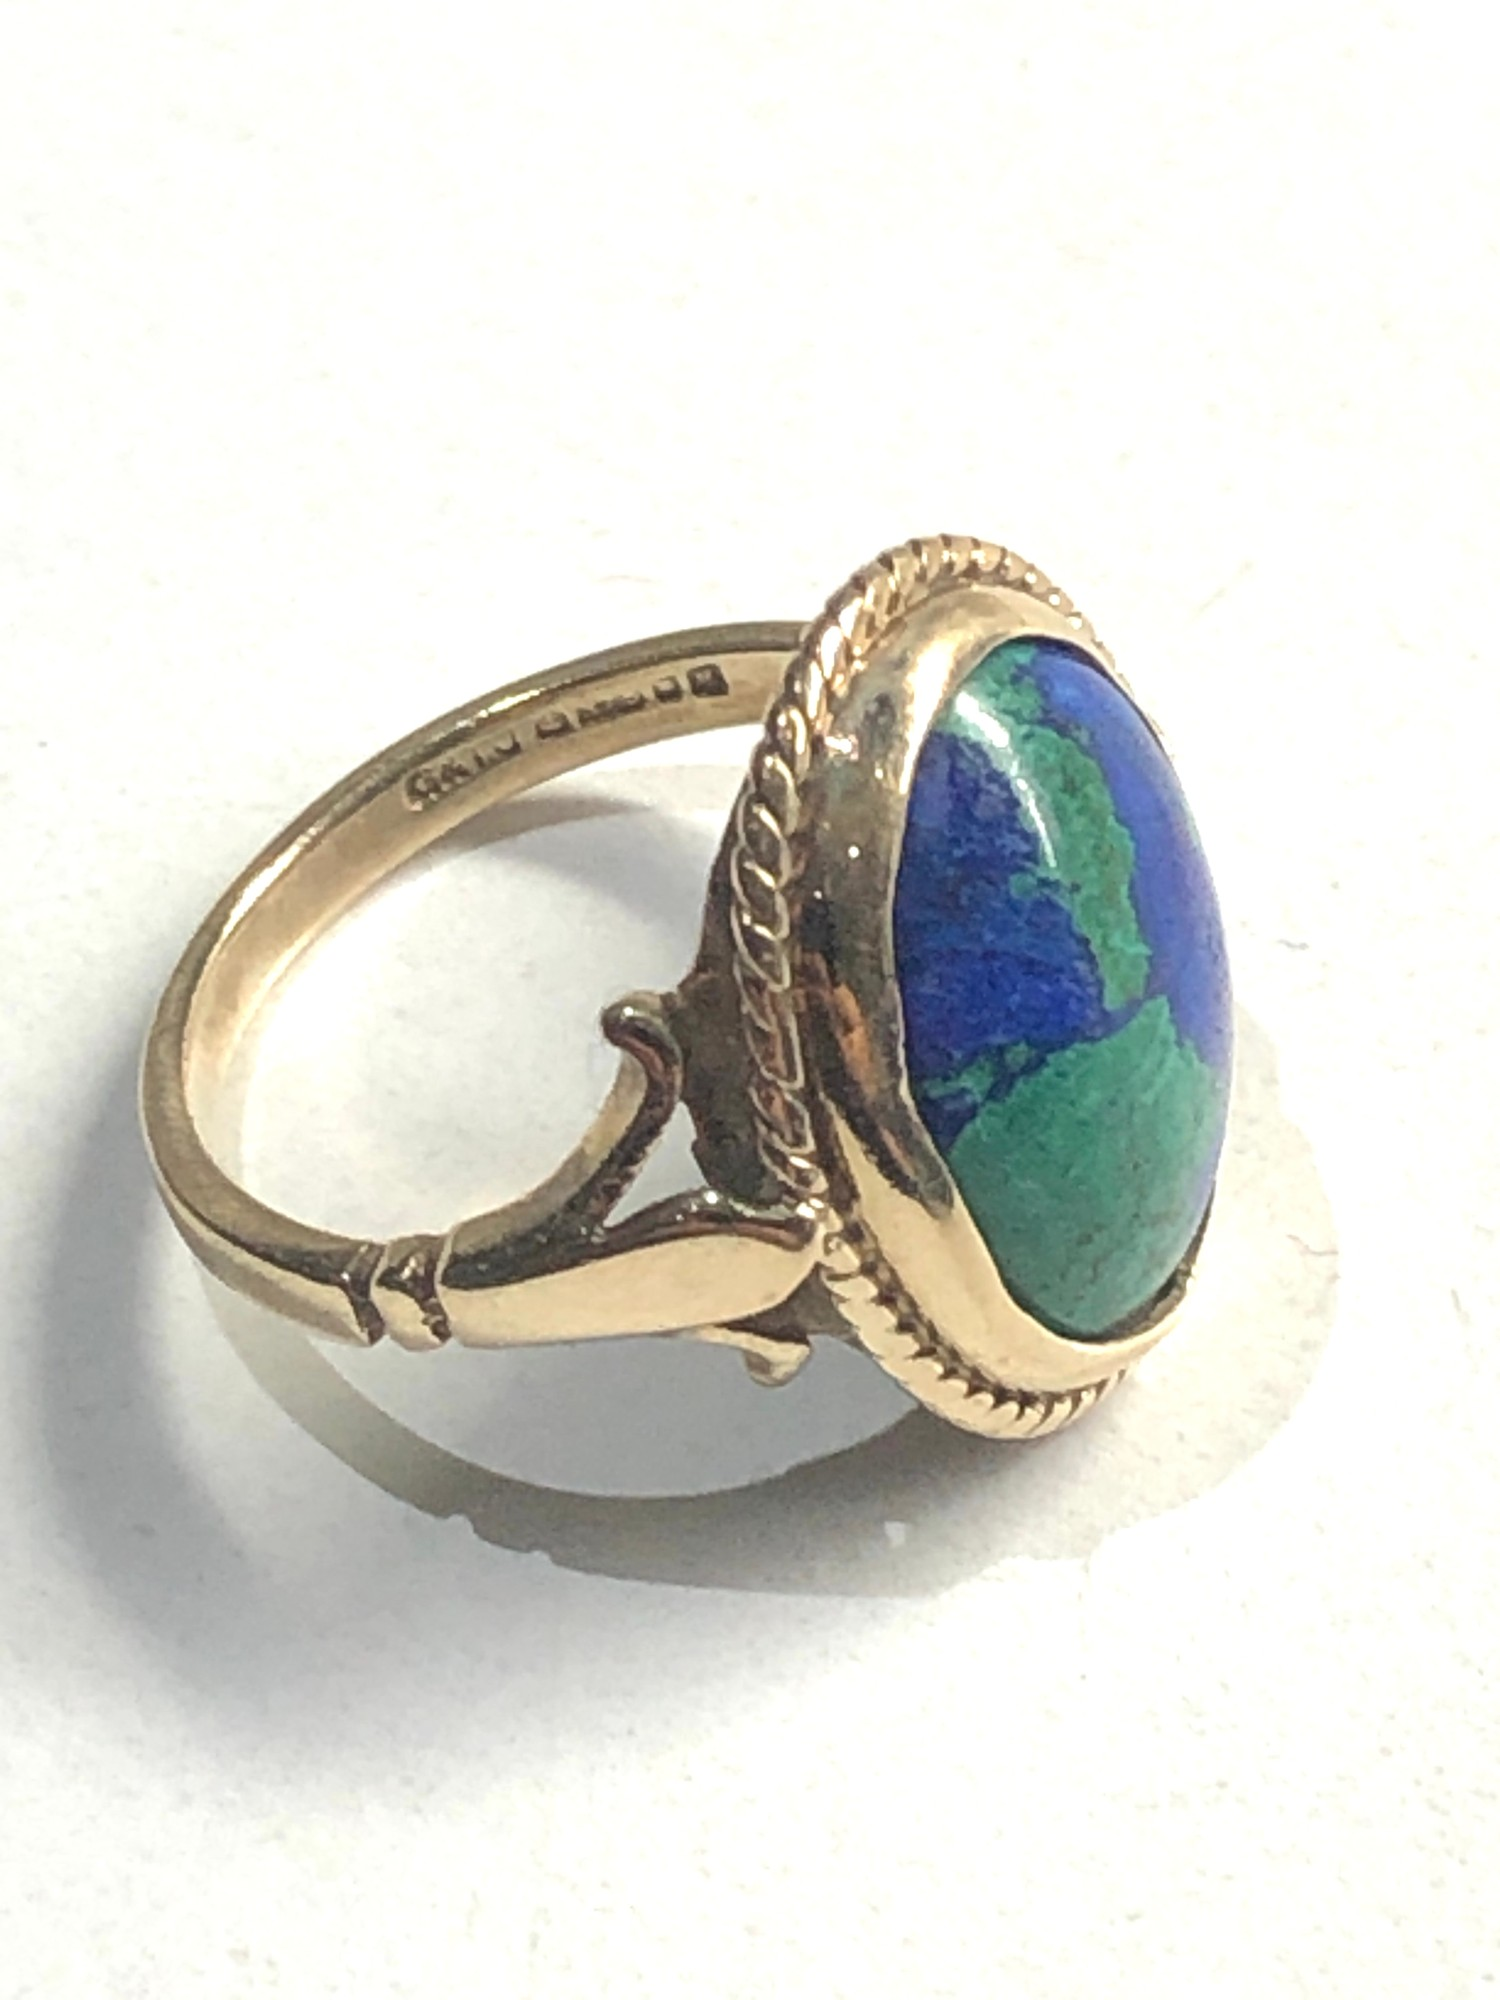 9ct azure malachite solitaire ring 3.5G - Image 2 of 3